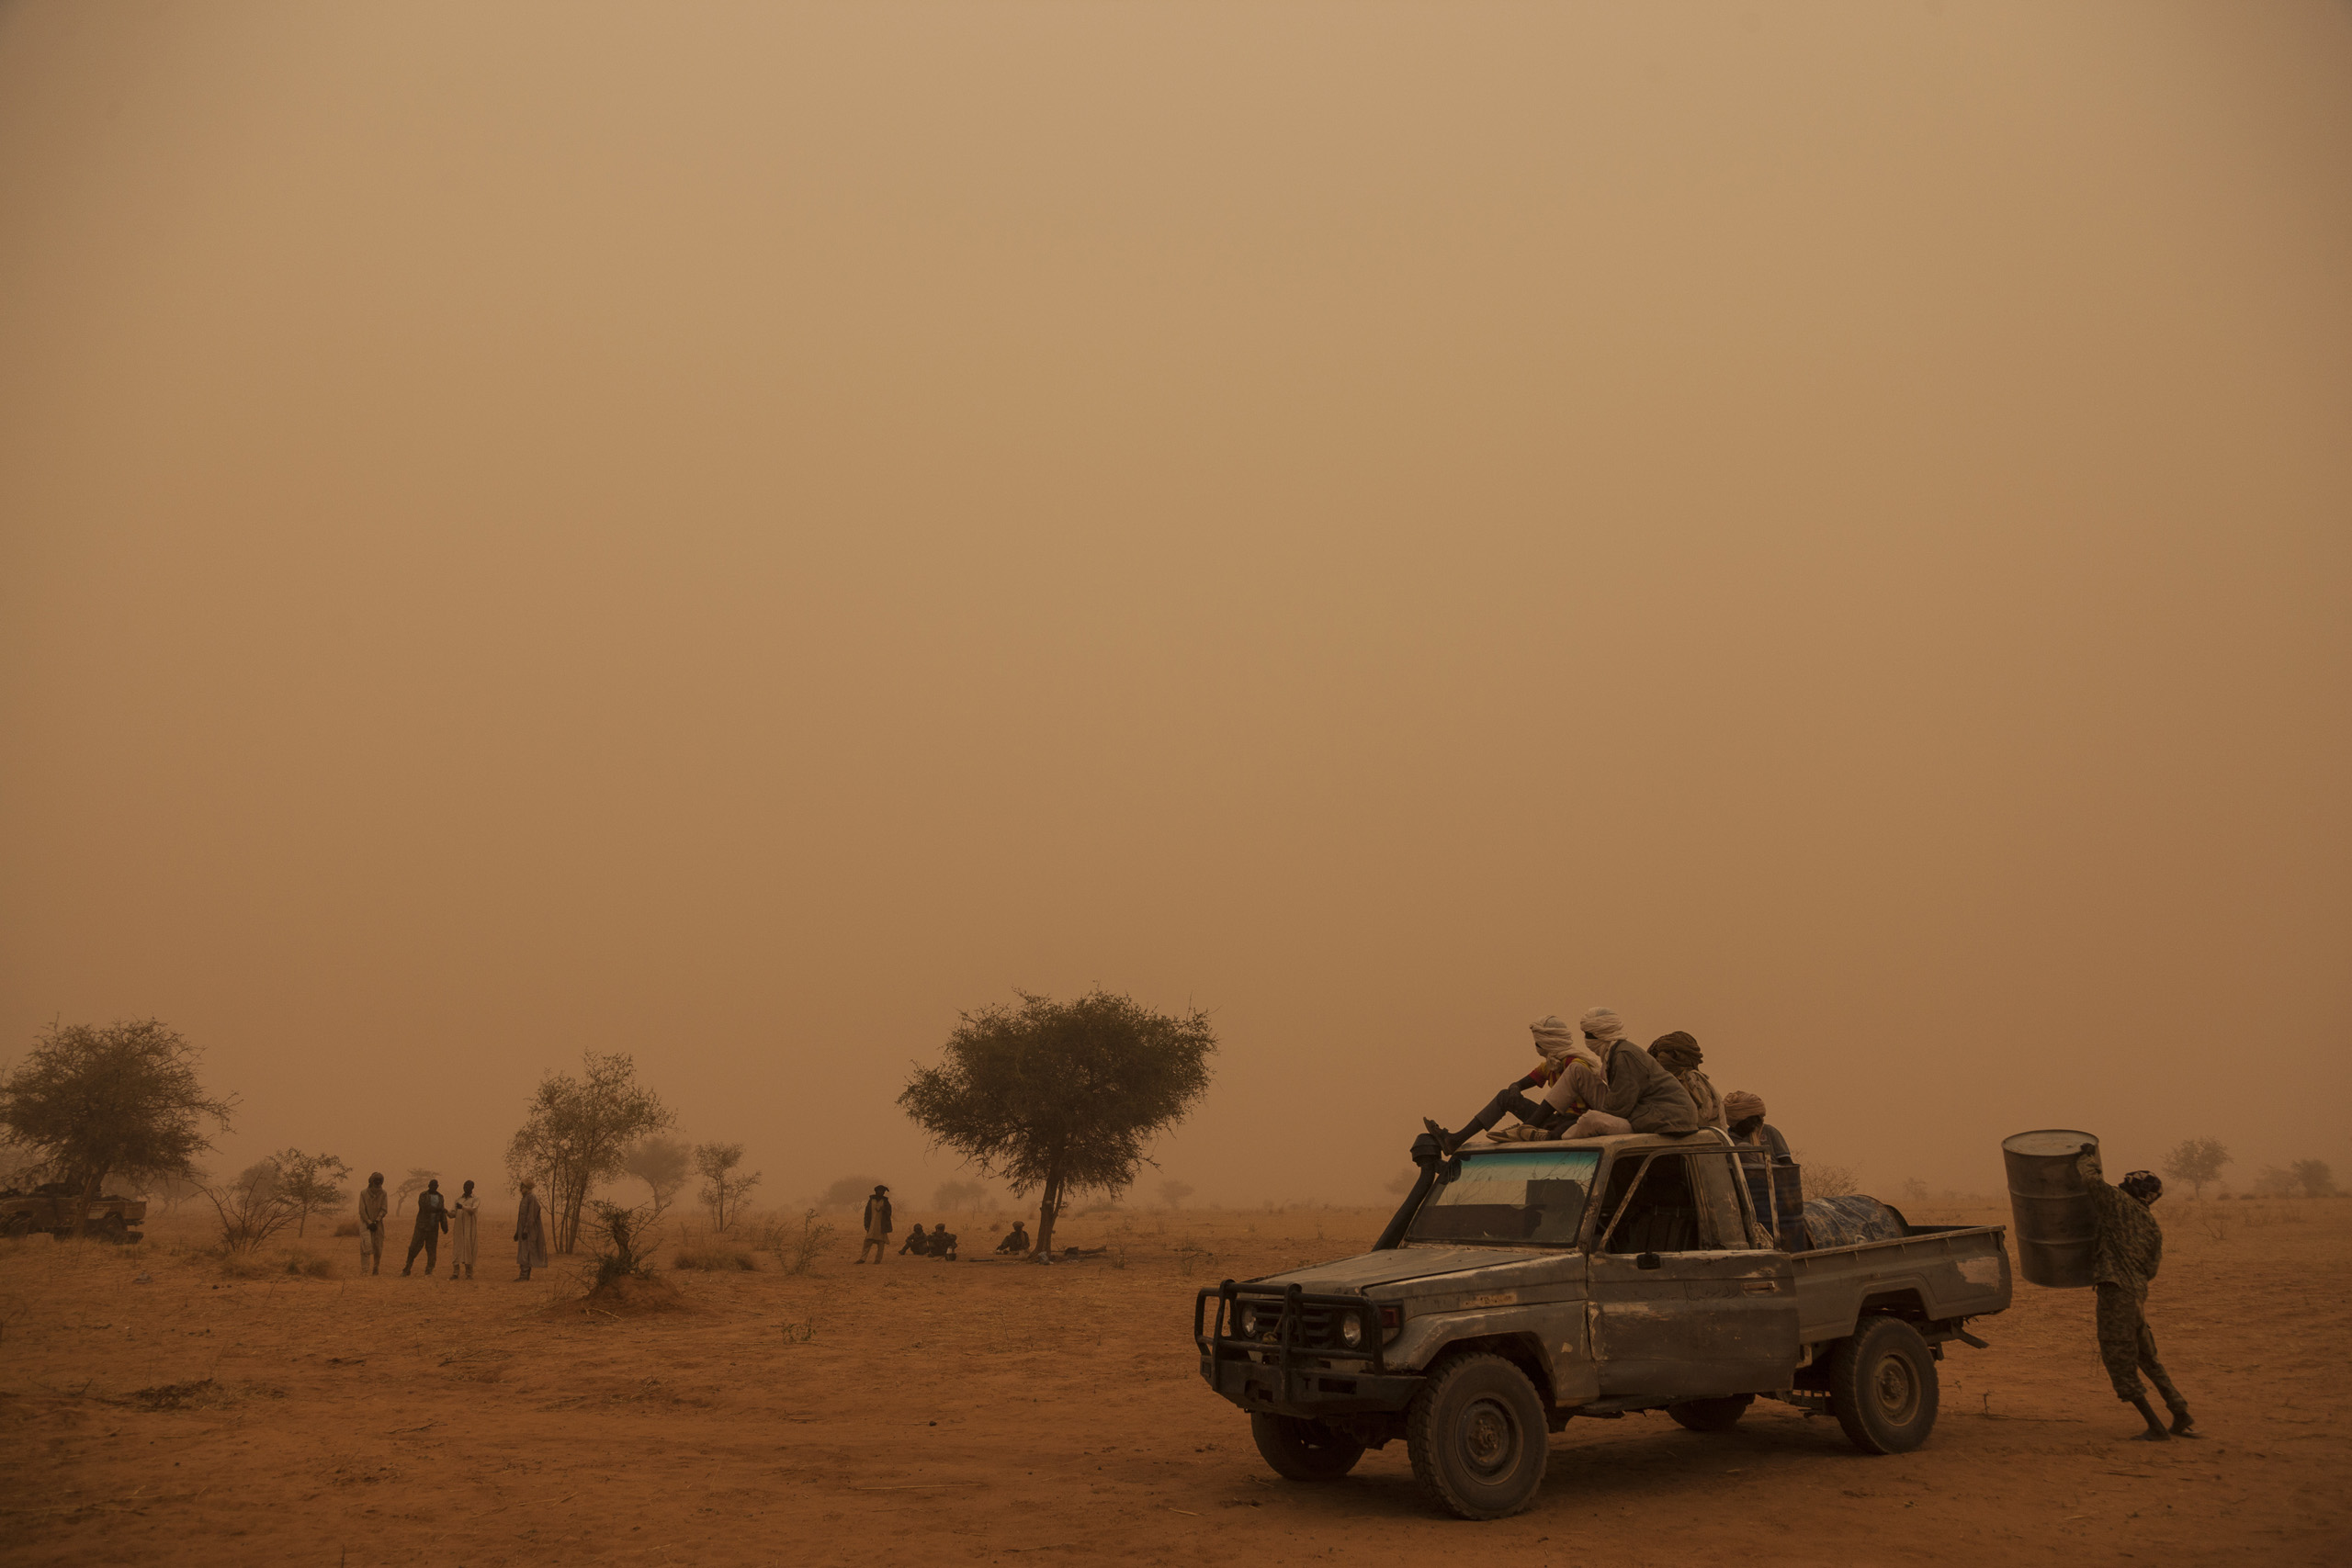 Rebel soldiers from the Sudan Liberation Army – Abdul Wahid (SLA-AW) prepare the truck to go for water in the middle of a sand storm in North Darfur, Sudan, on Feb. 24, 2015.